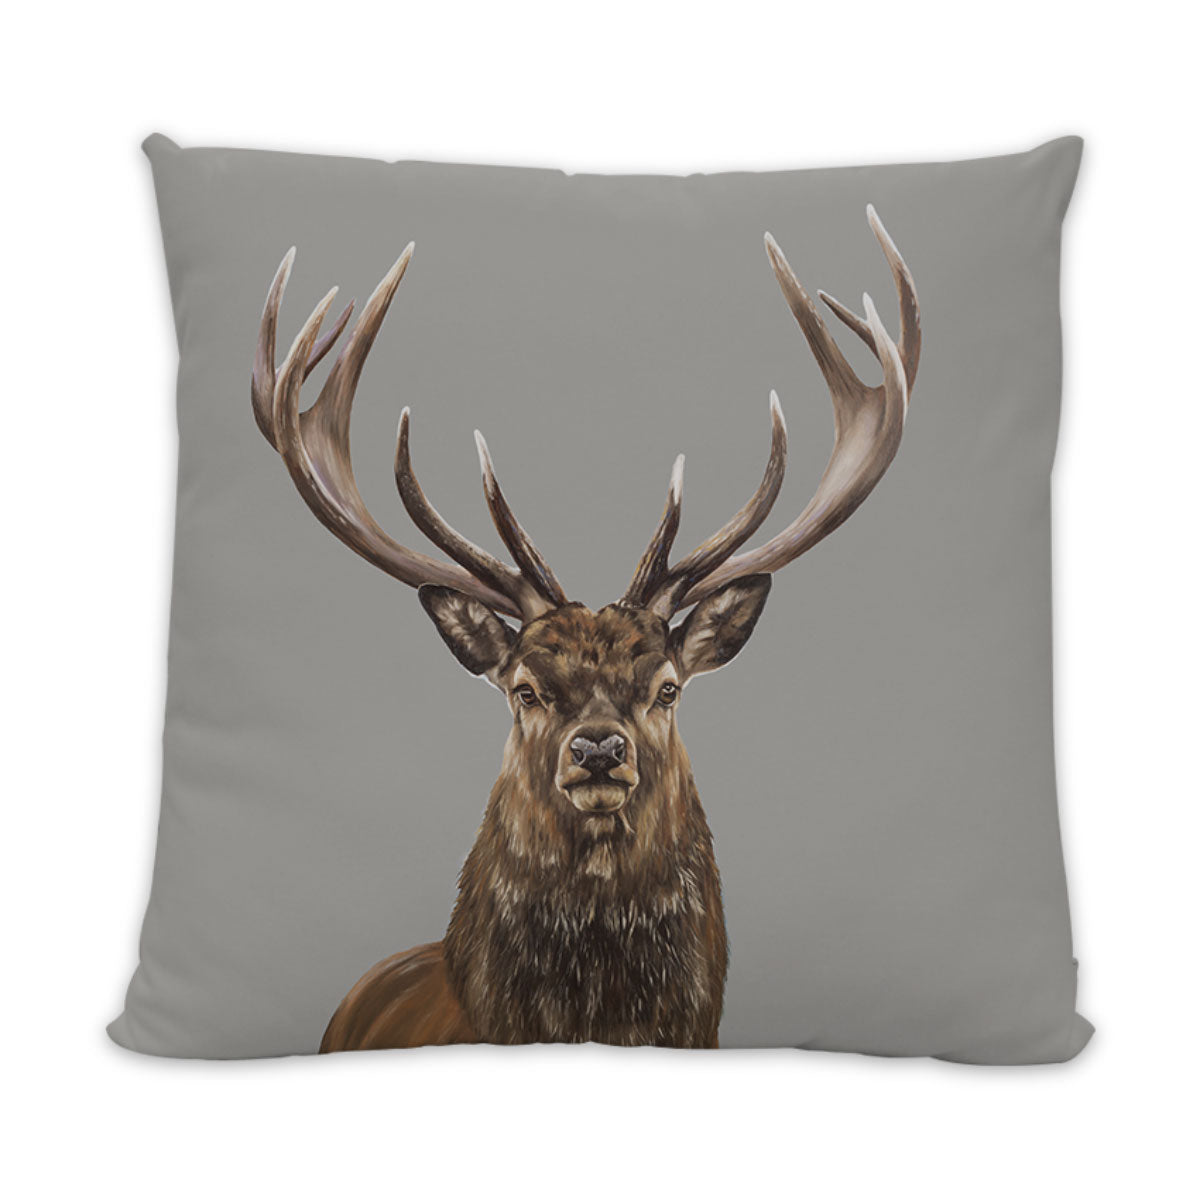 Stag Cushion - The Protector